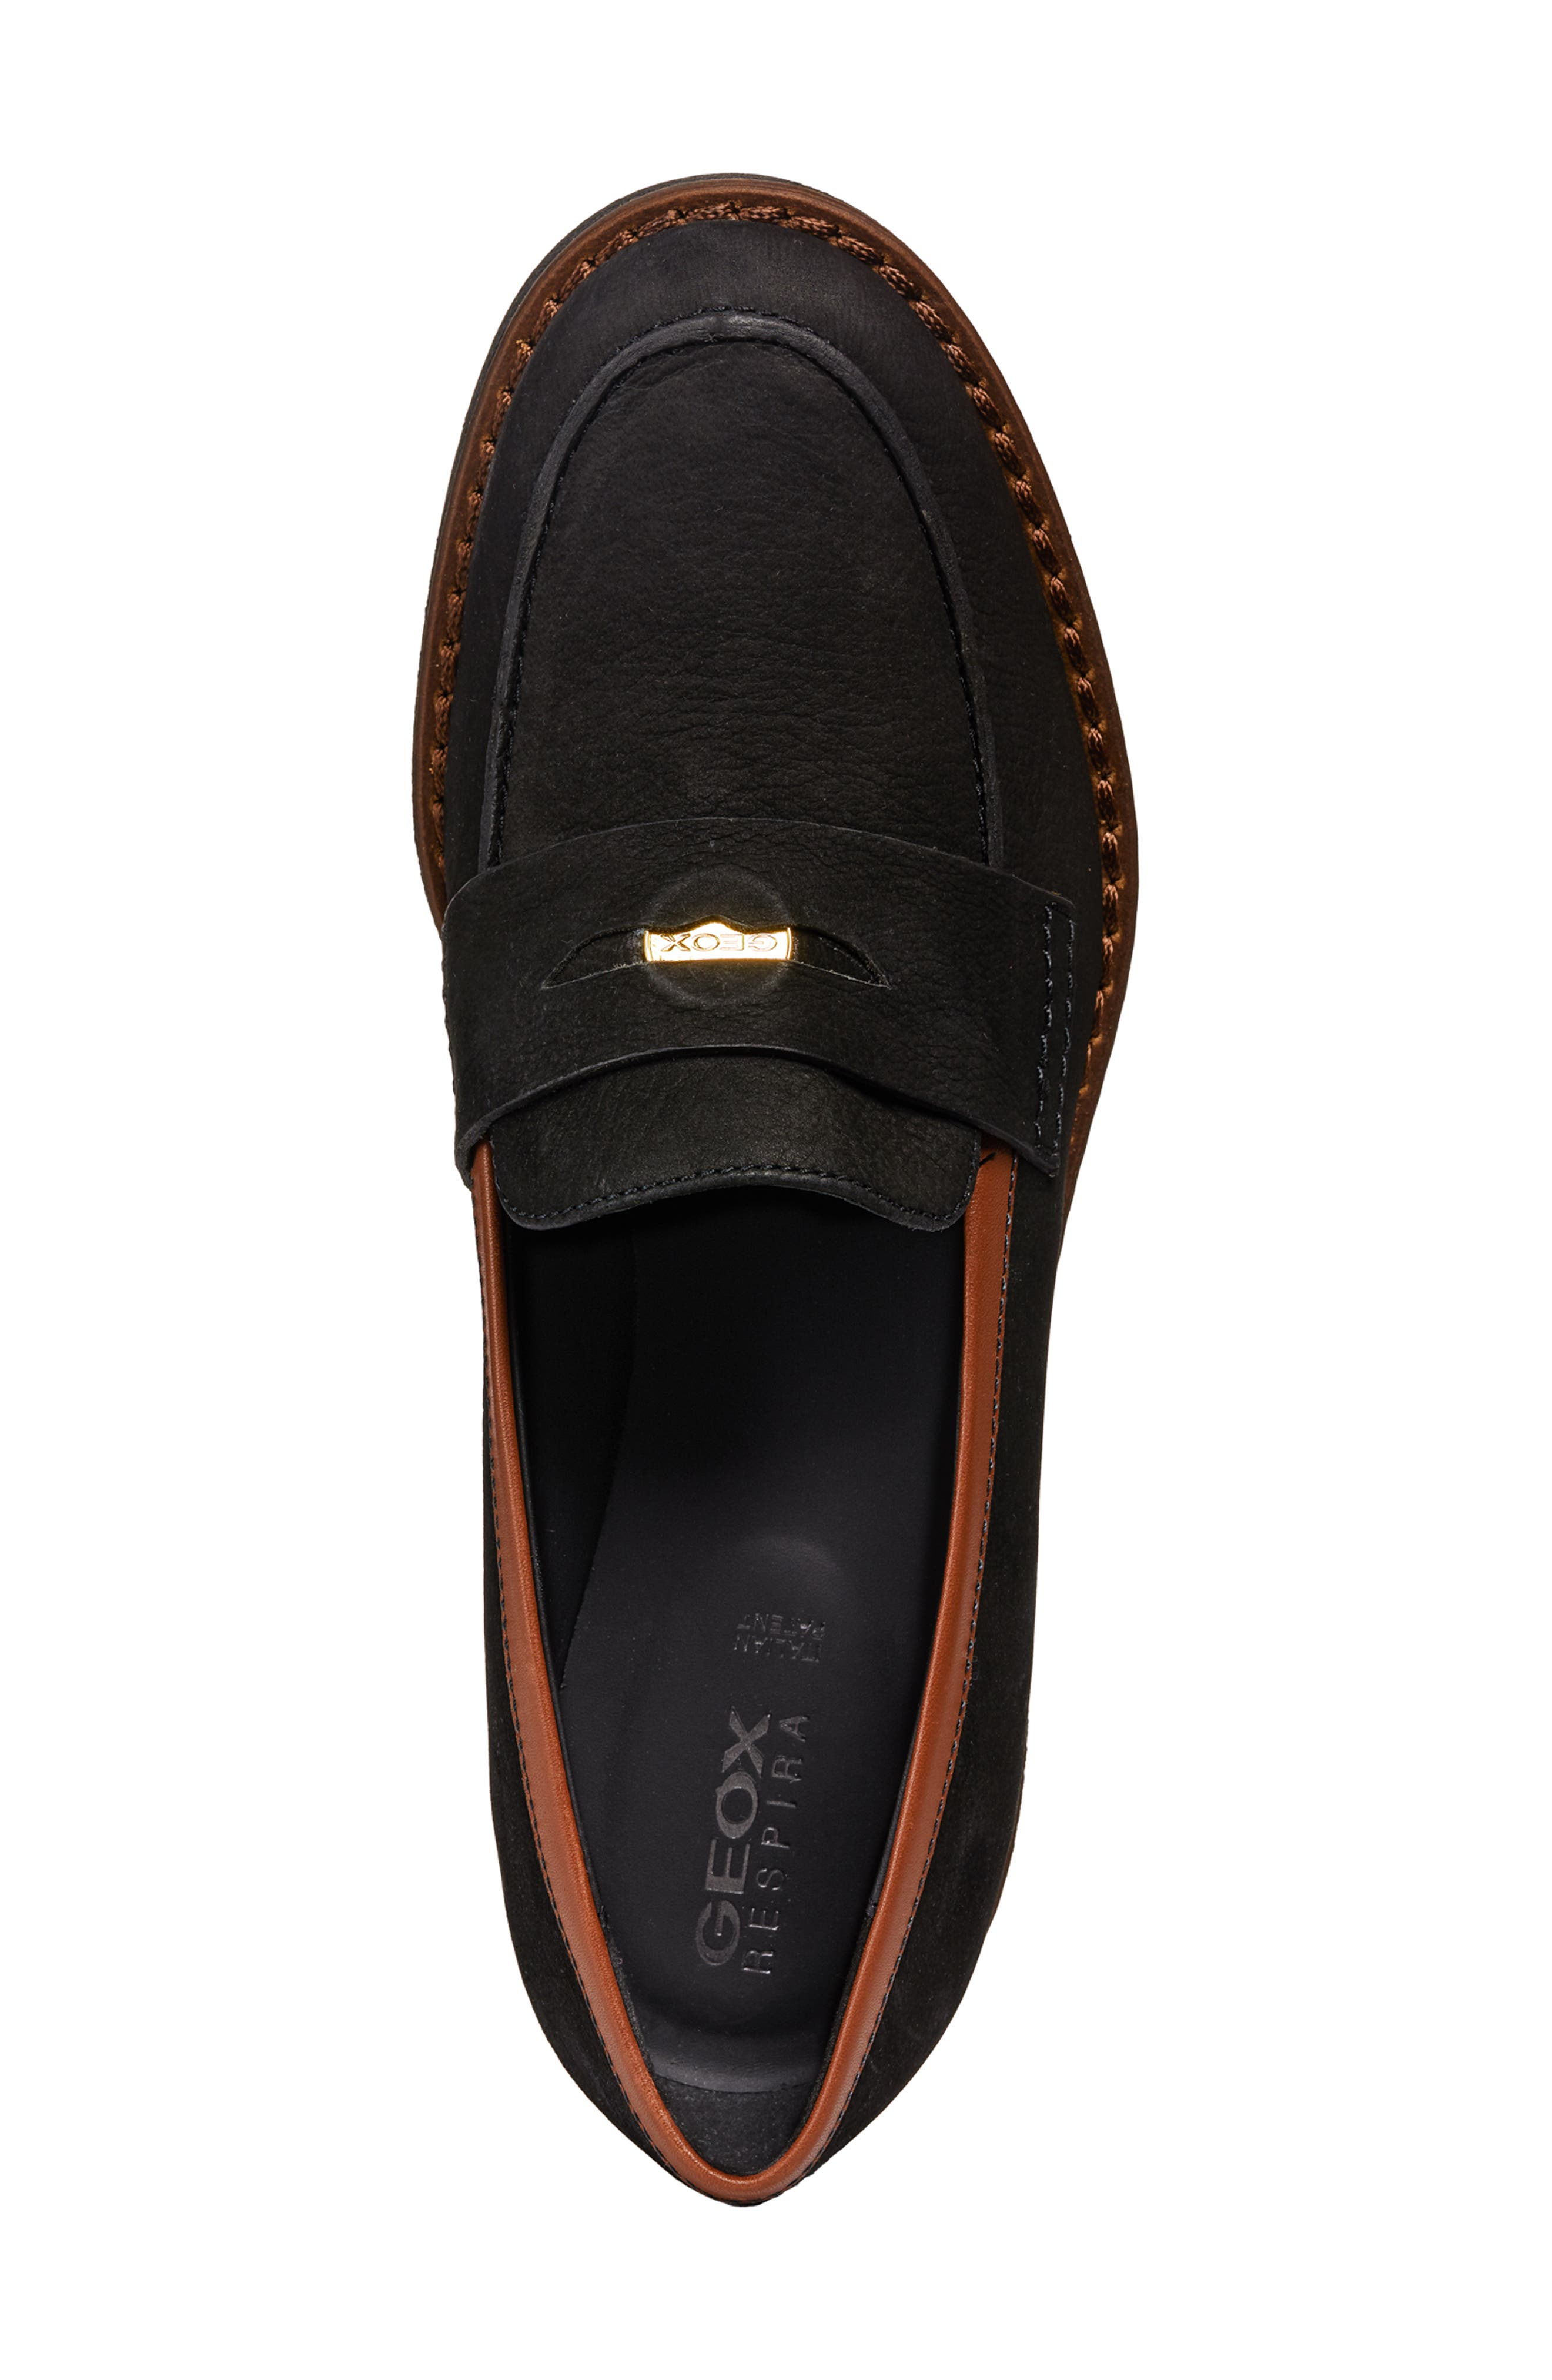 Adrya Loafer,                             Alternate thumbnail 4, color,                             BLACK/ BROWN NUBUCK LEATHER